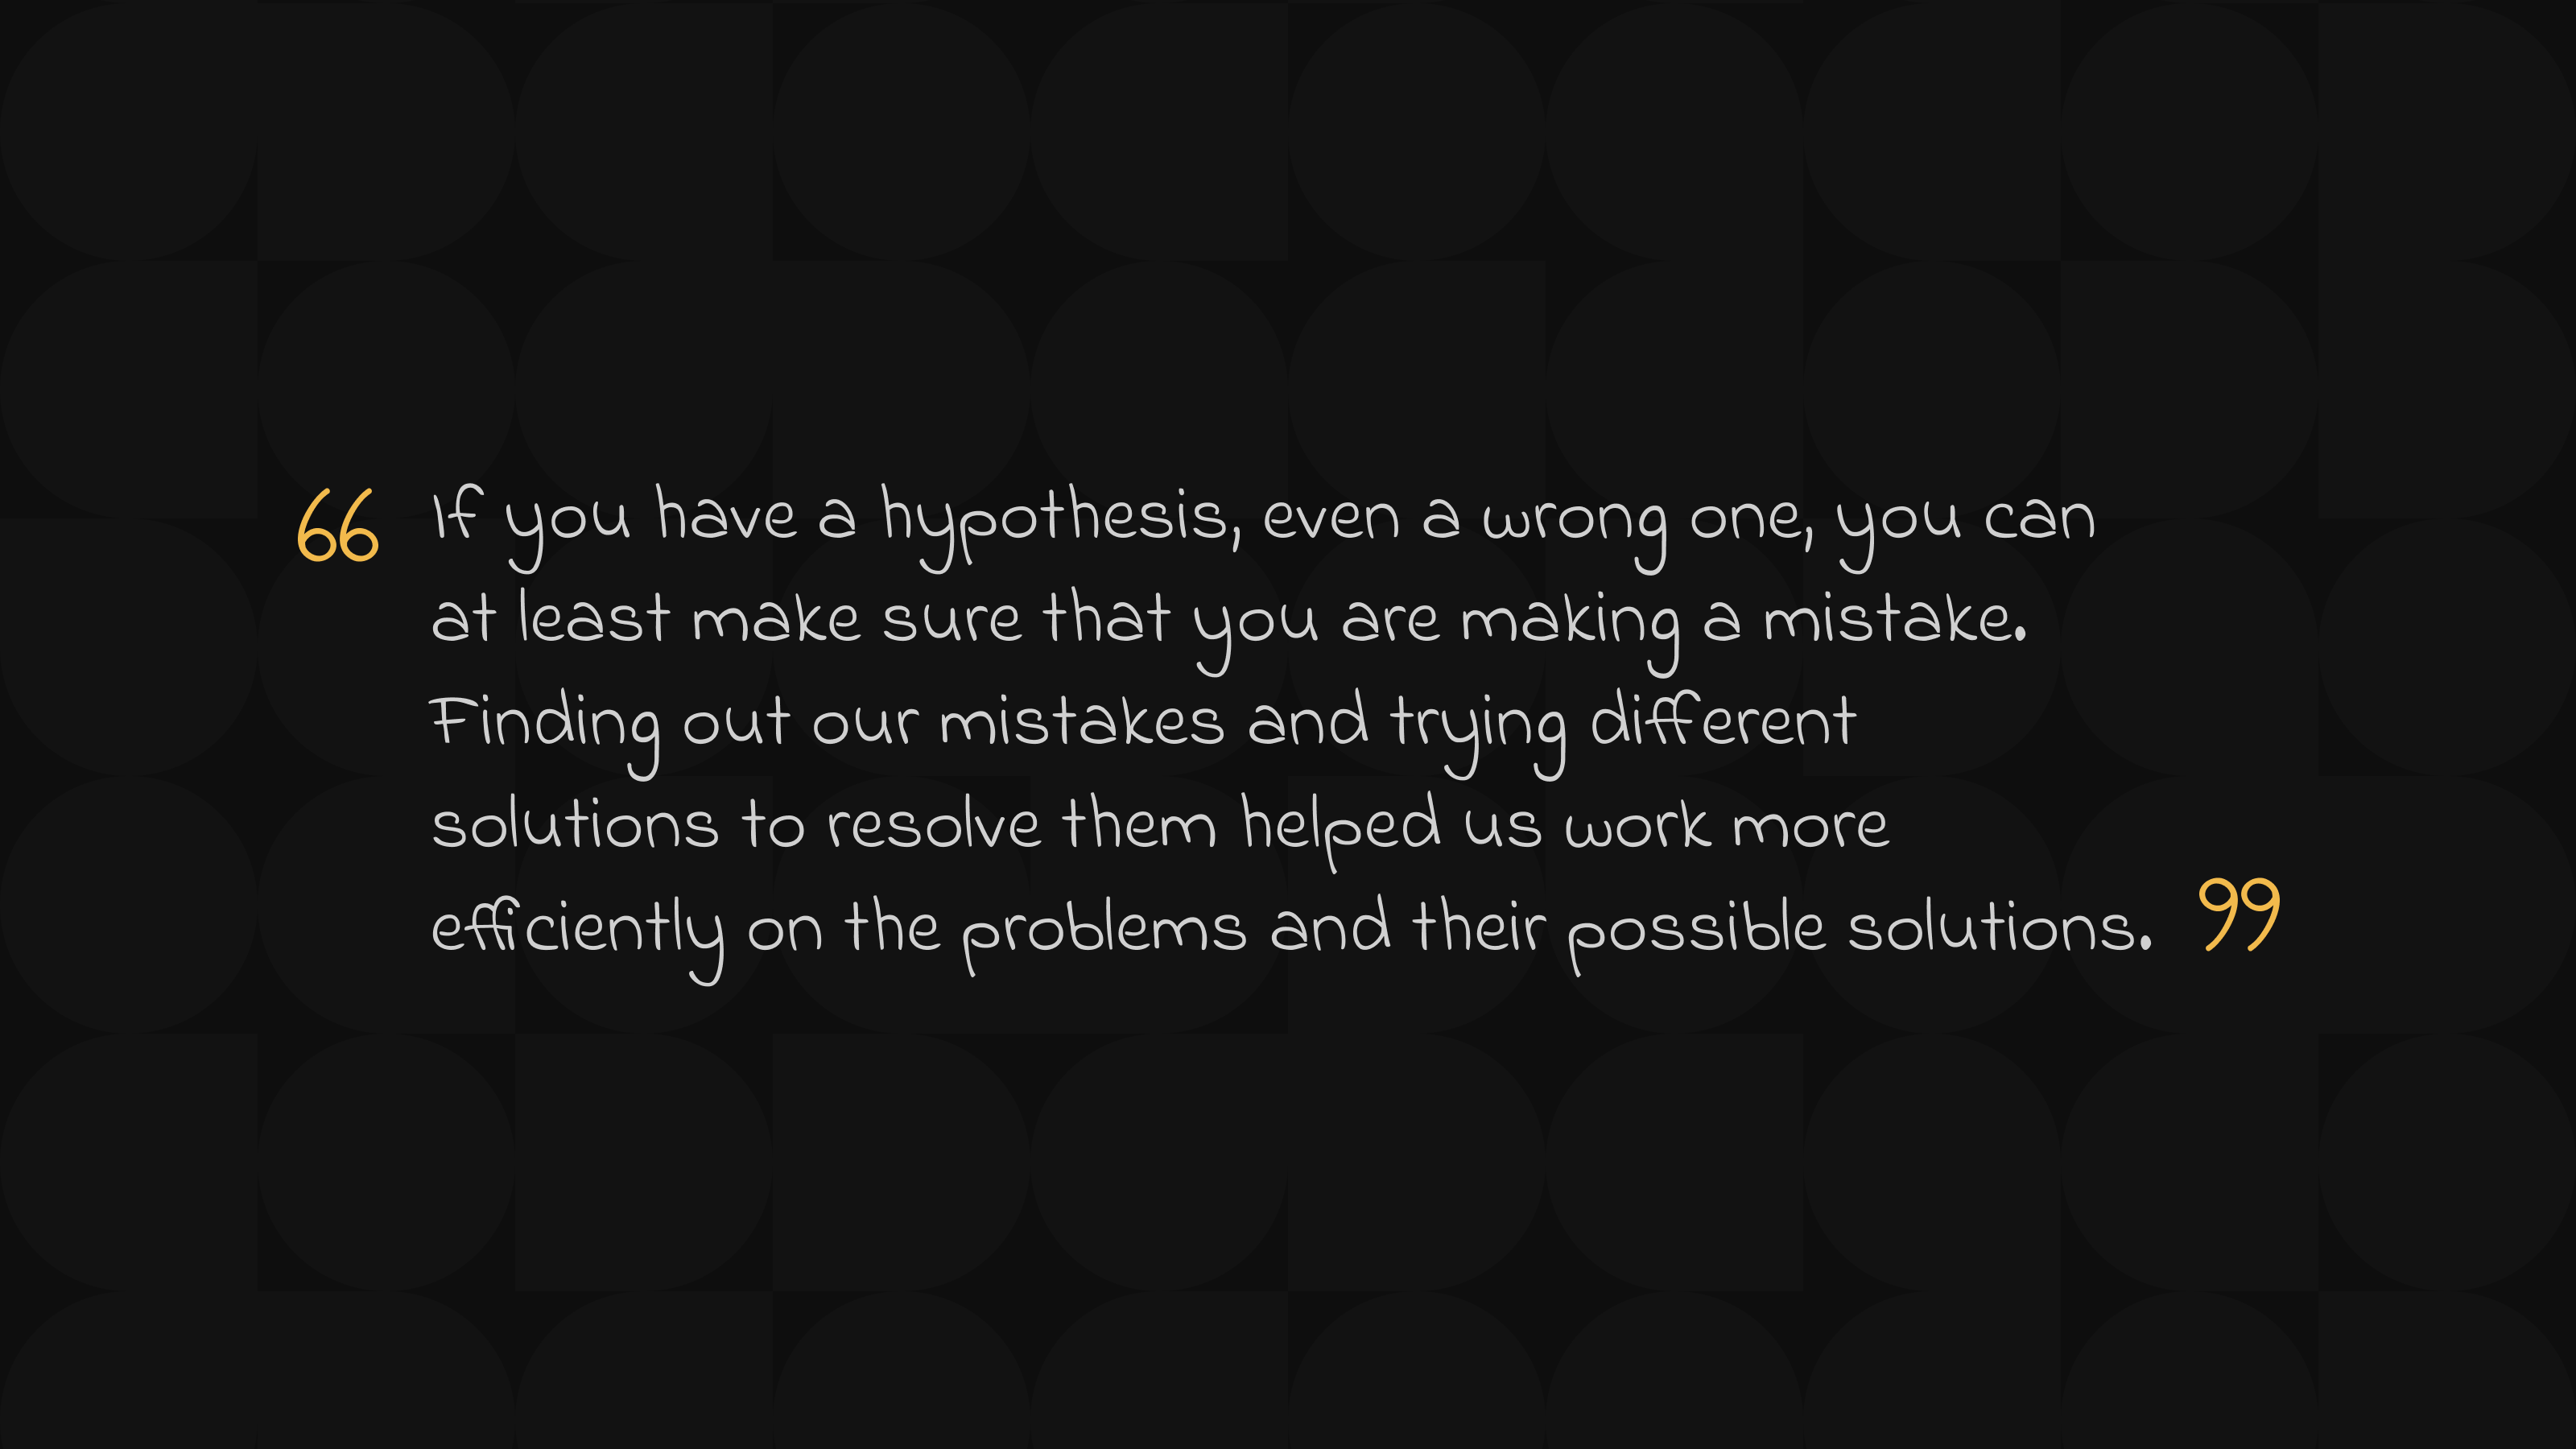 If you have a hypothesis, even a wrong one, you can at least make sure that you are making a mistake. Finding out our mistakes and trying different solutions to resolve them helped us work more efficiently on the problems and their possible solutions.